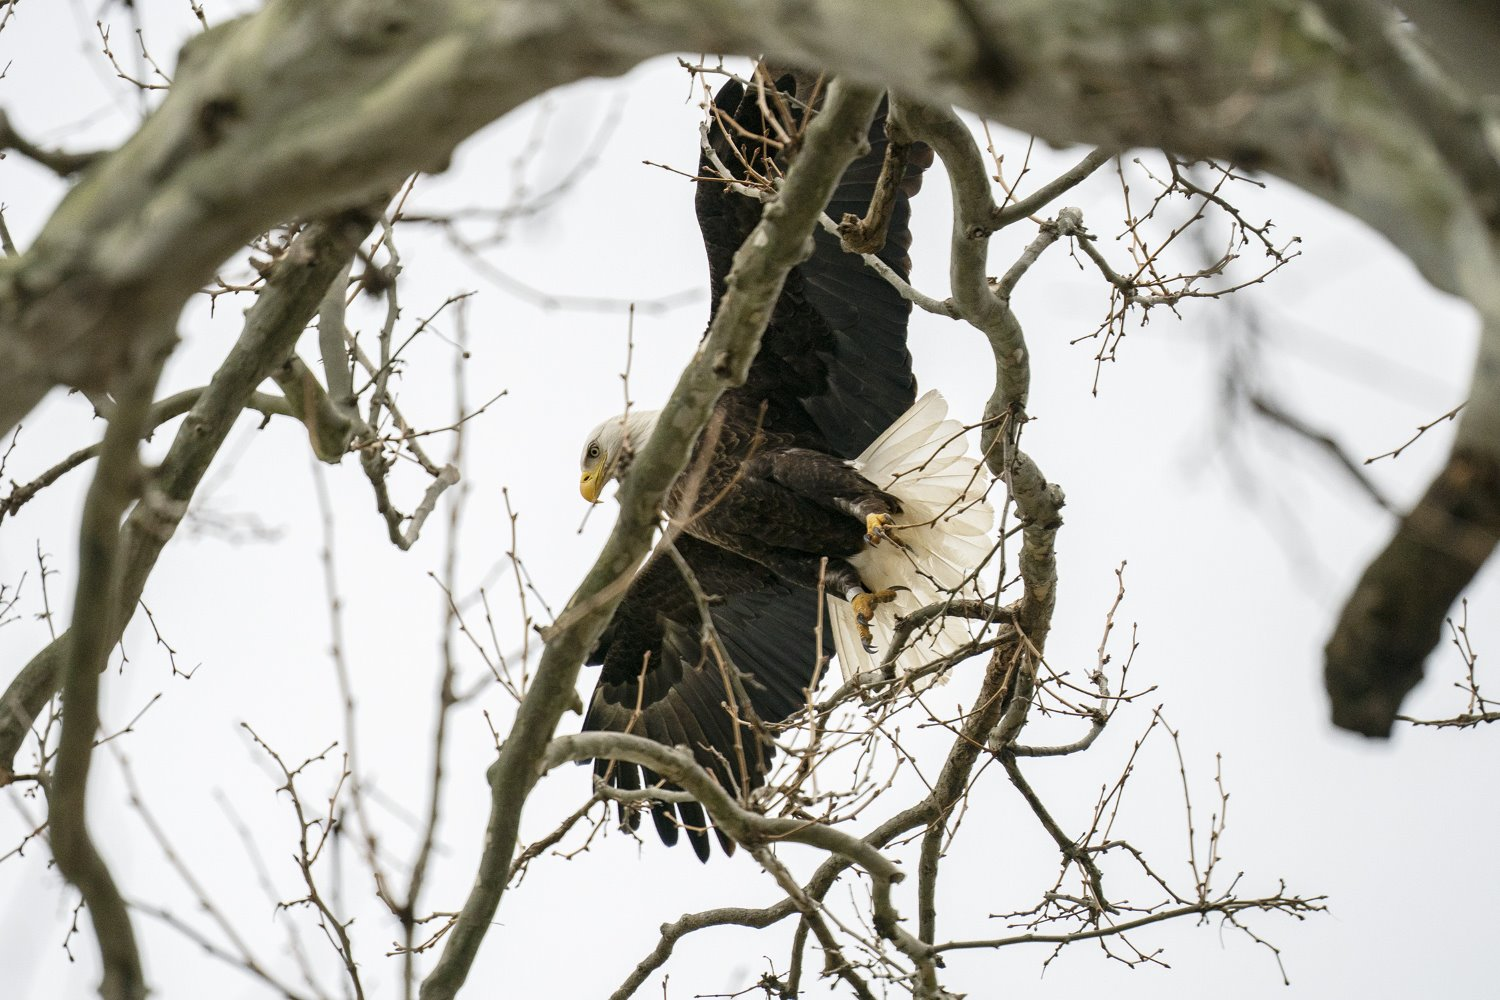 bald eagle taking off from branch